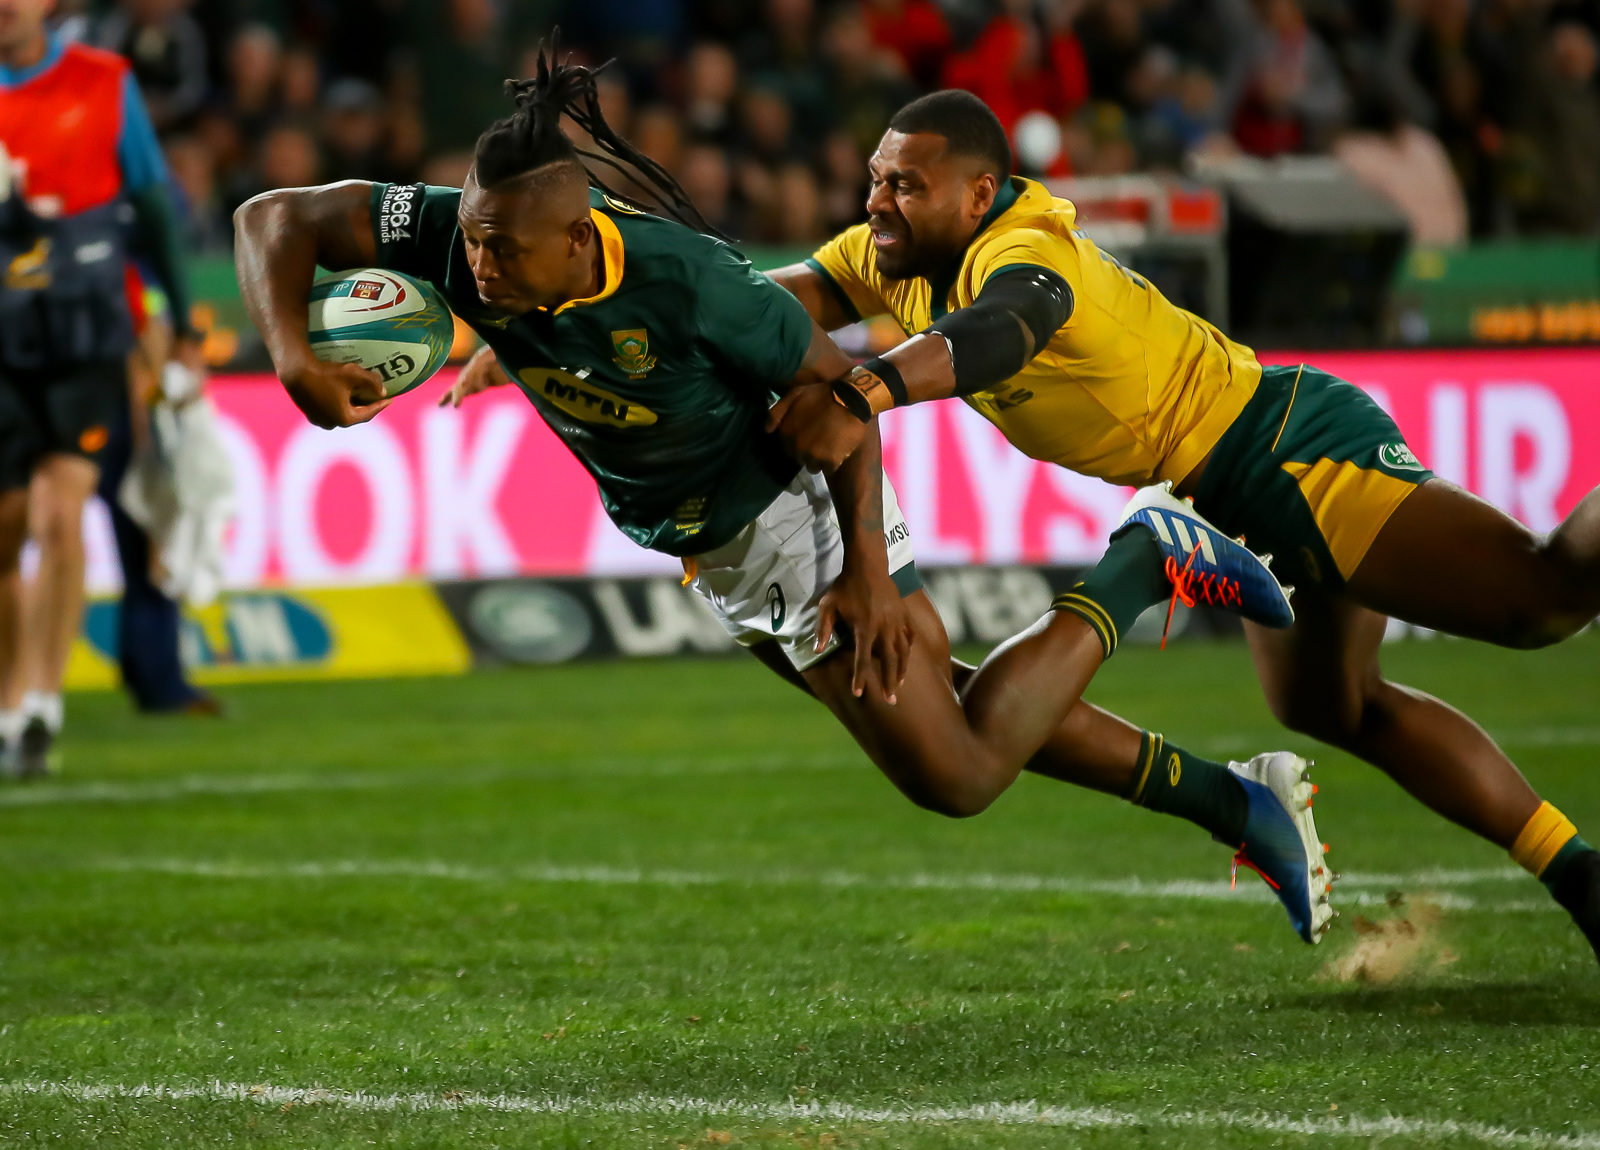 The MoneyMan show: Weekend rugby special